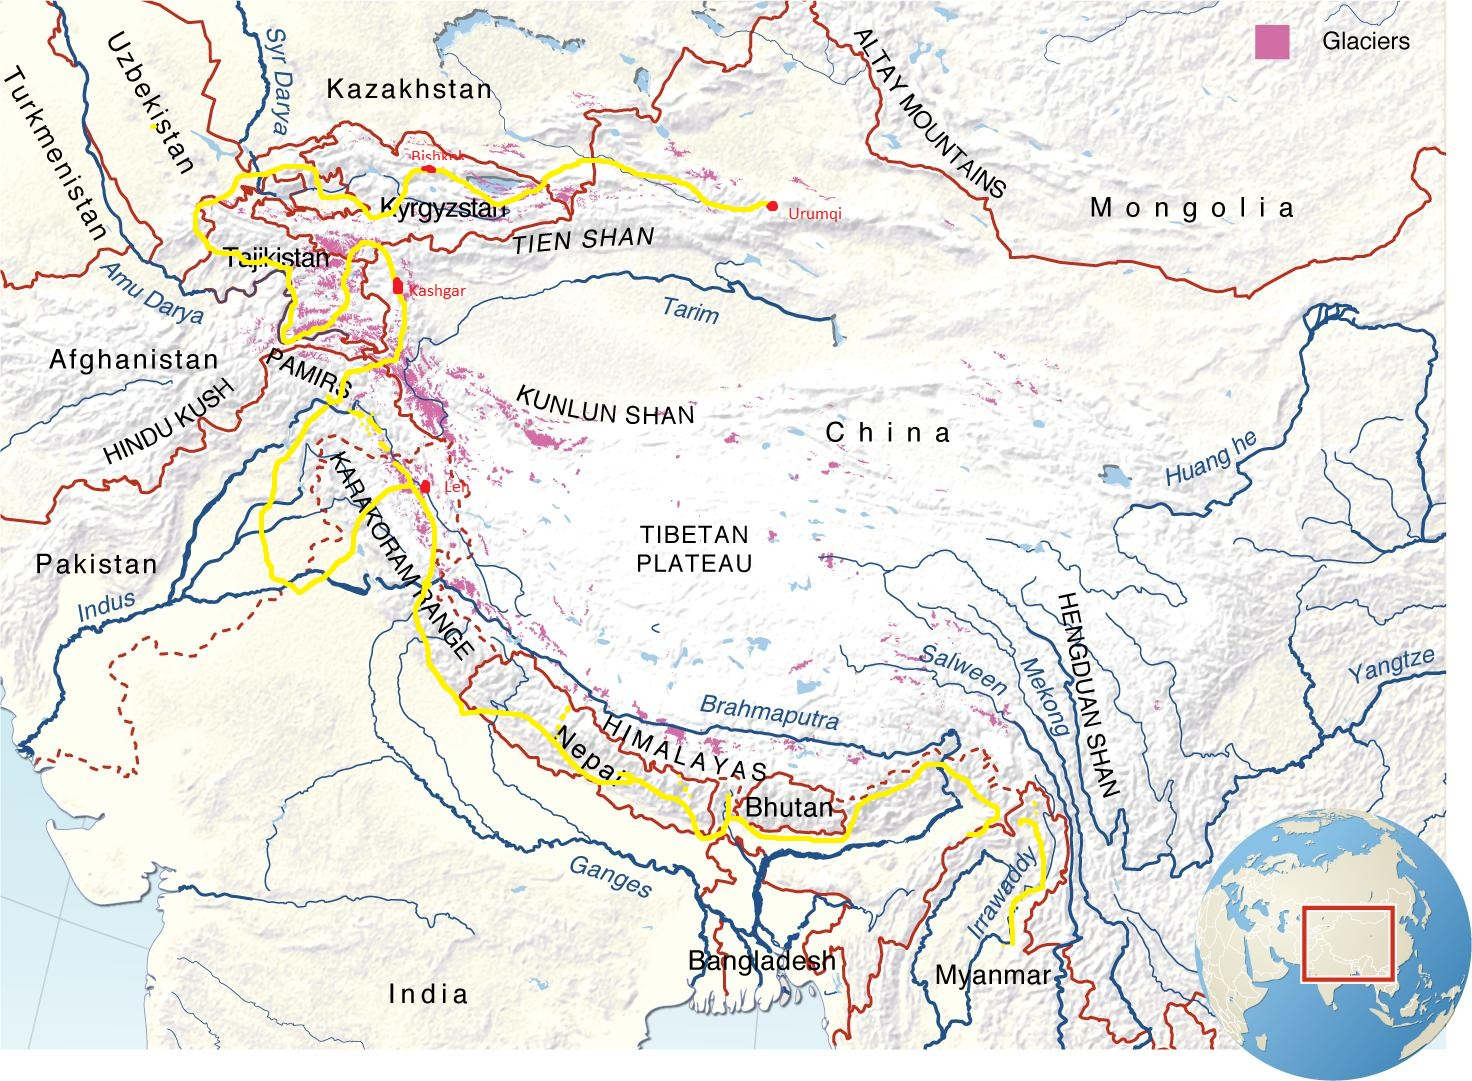 Cycling High Asia: The Mountains of Asia - Maps